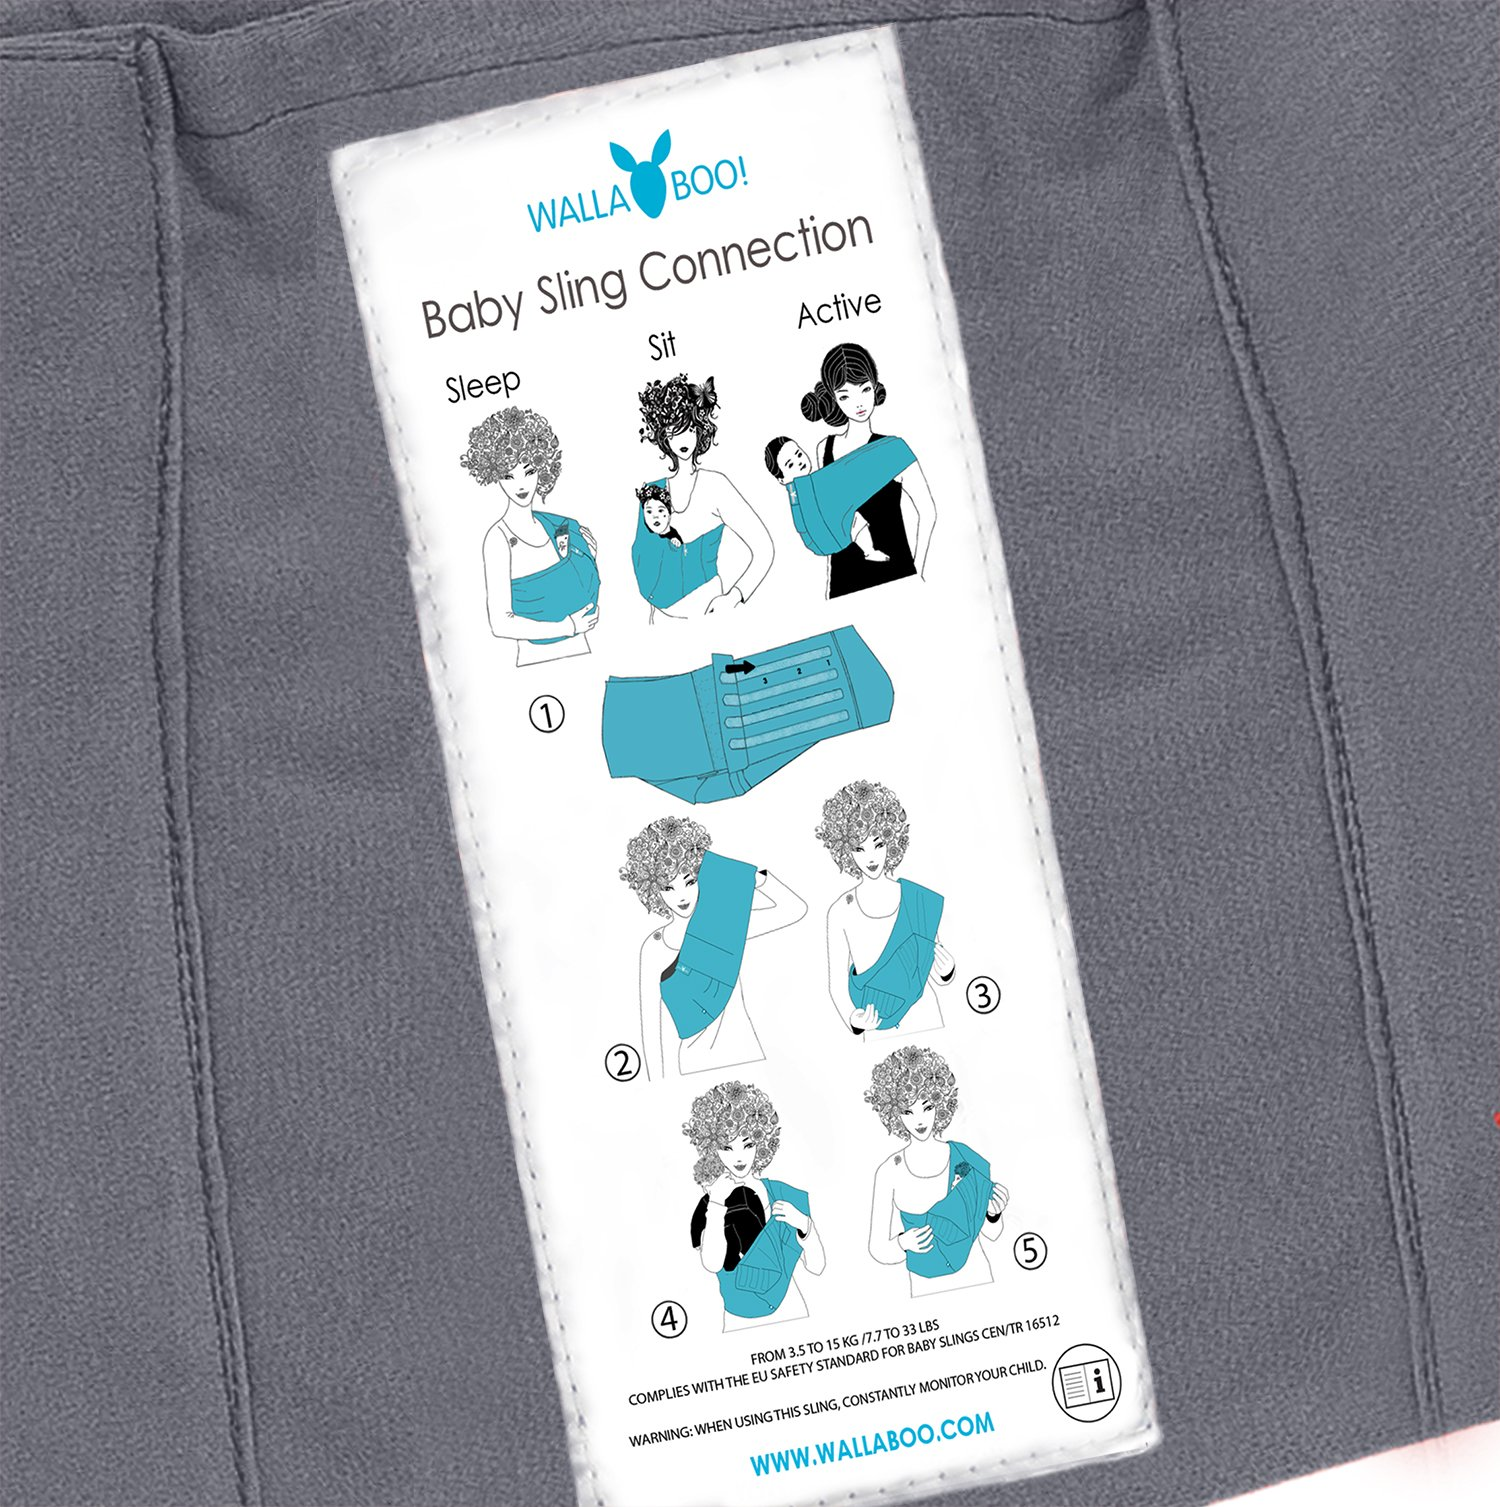 Wallaboo Wrap Sling Carrier Connection, Easy Adjustable, Ergonomic, 3 Carrying Positions, Newborn 8lbs to 33 lbs, Soft Breathable Cotton, 3 Sitting Positions, EU Safety Tested, Color: Grey / Silver Wallaboo Ergonomically correct design with three natural positions: sleep, sit and active- one size fits all Can be used from premature baby through to 33lbs - with easy-to-use features like a full-front opening and an adjustable back Single piece of fabric, no straps, belts or buckles - partly padded to give extra comfort- no wrapping, no hardware. ready to wear 10